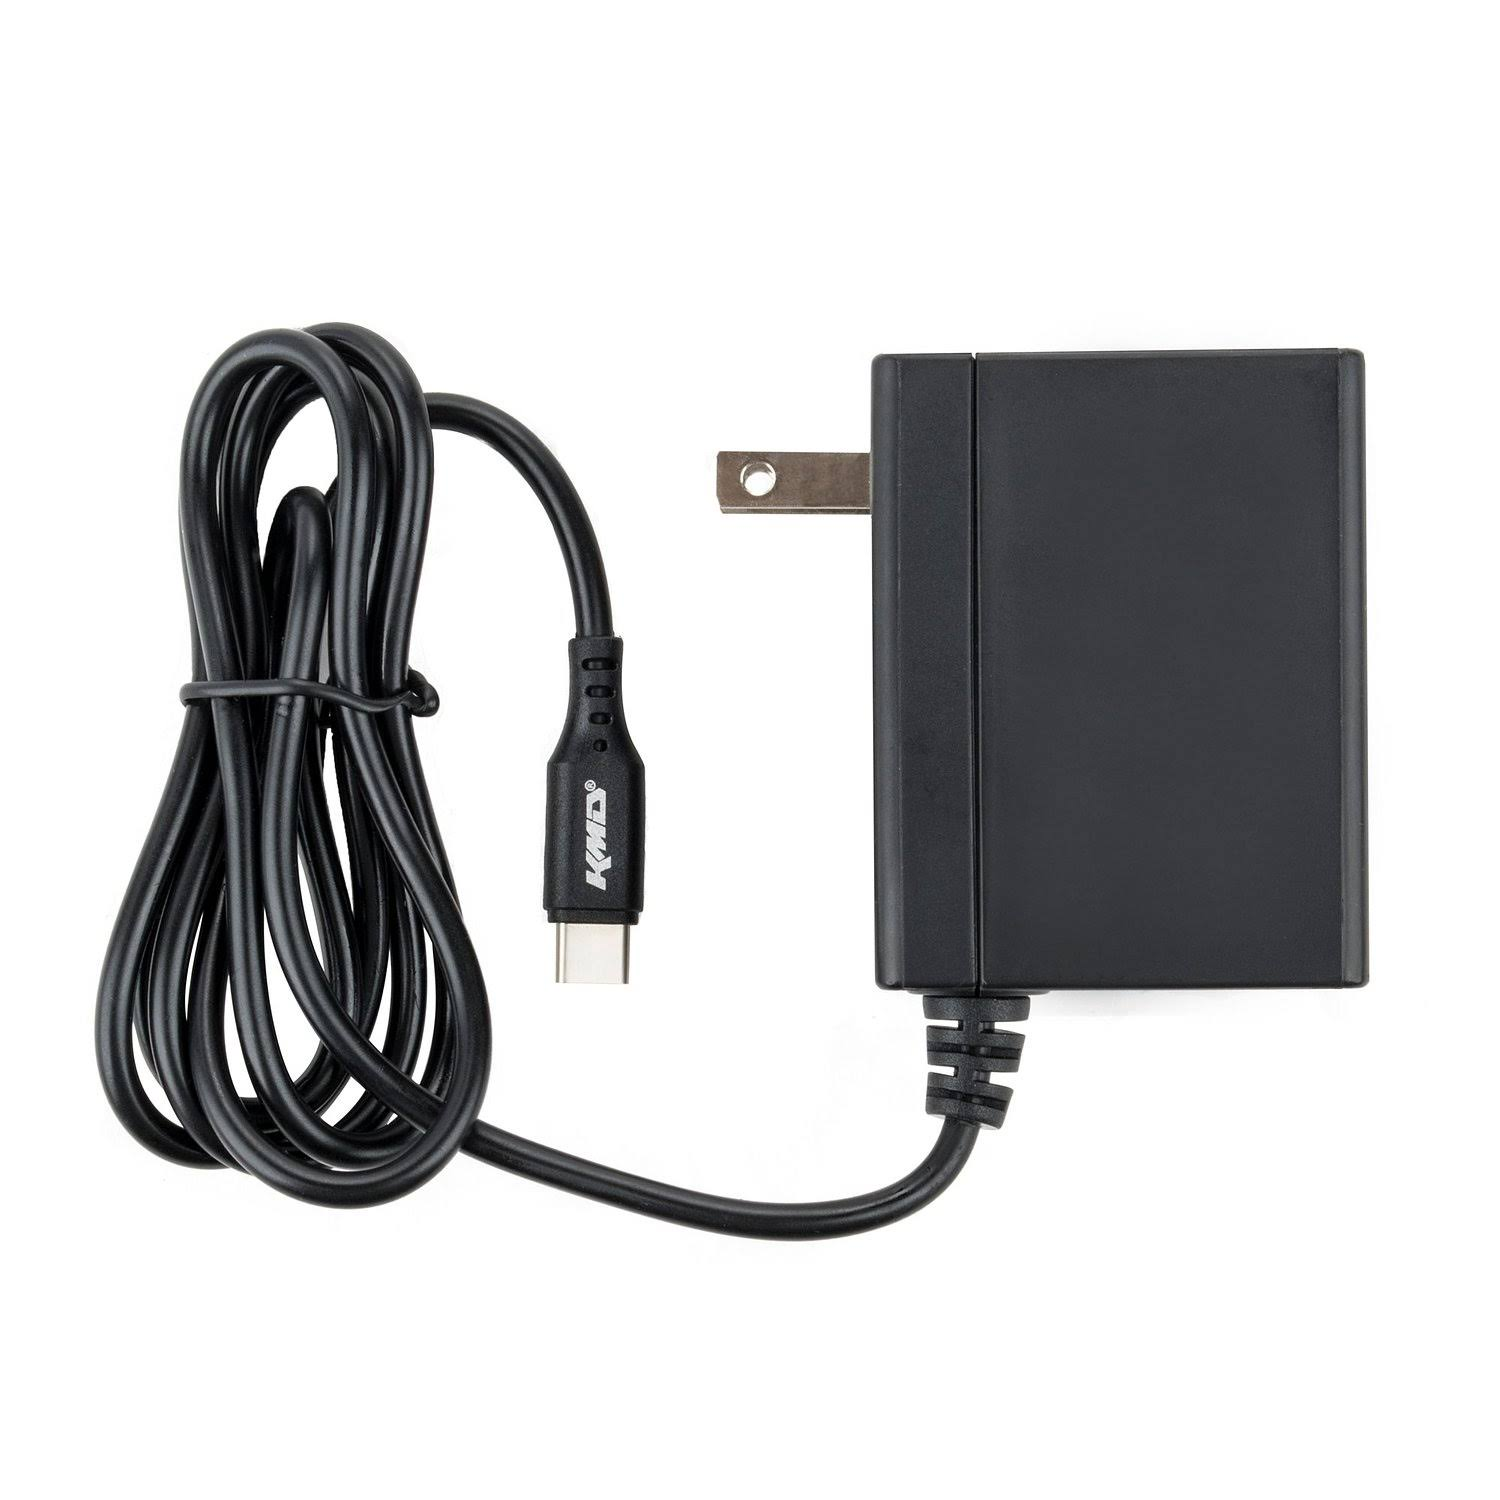 KMD Switch AC Adapter - 15V 2.6A Power Adapter